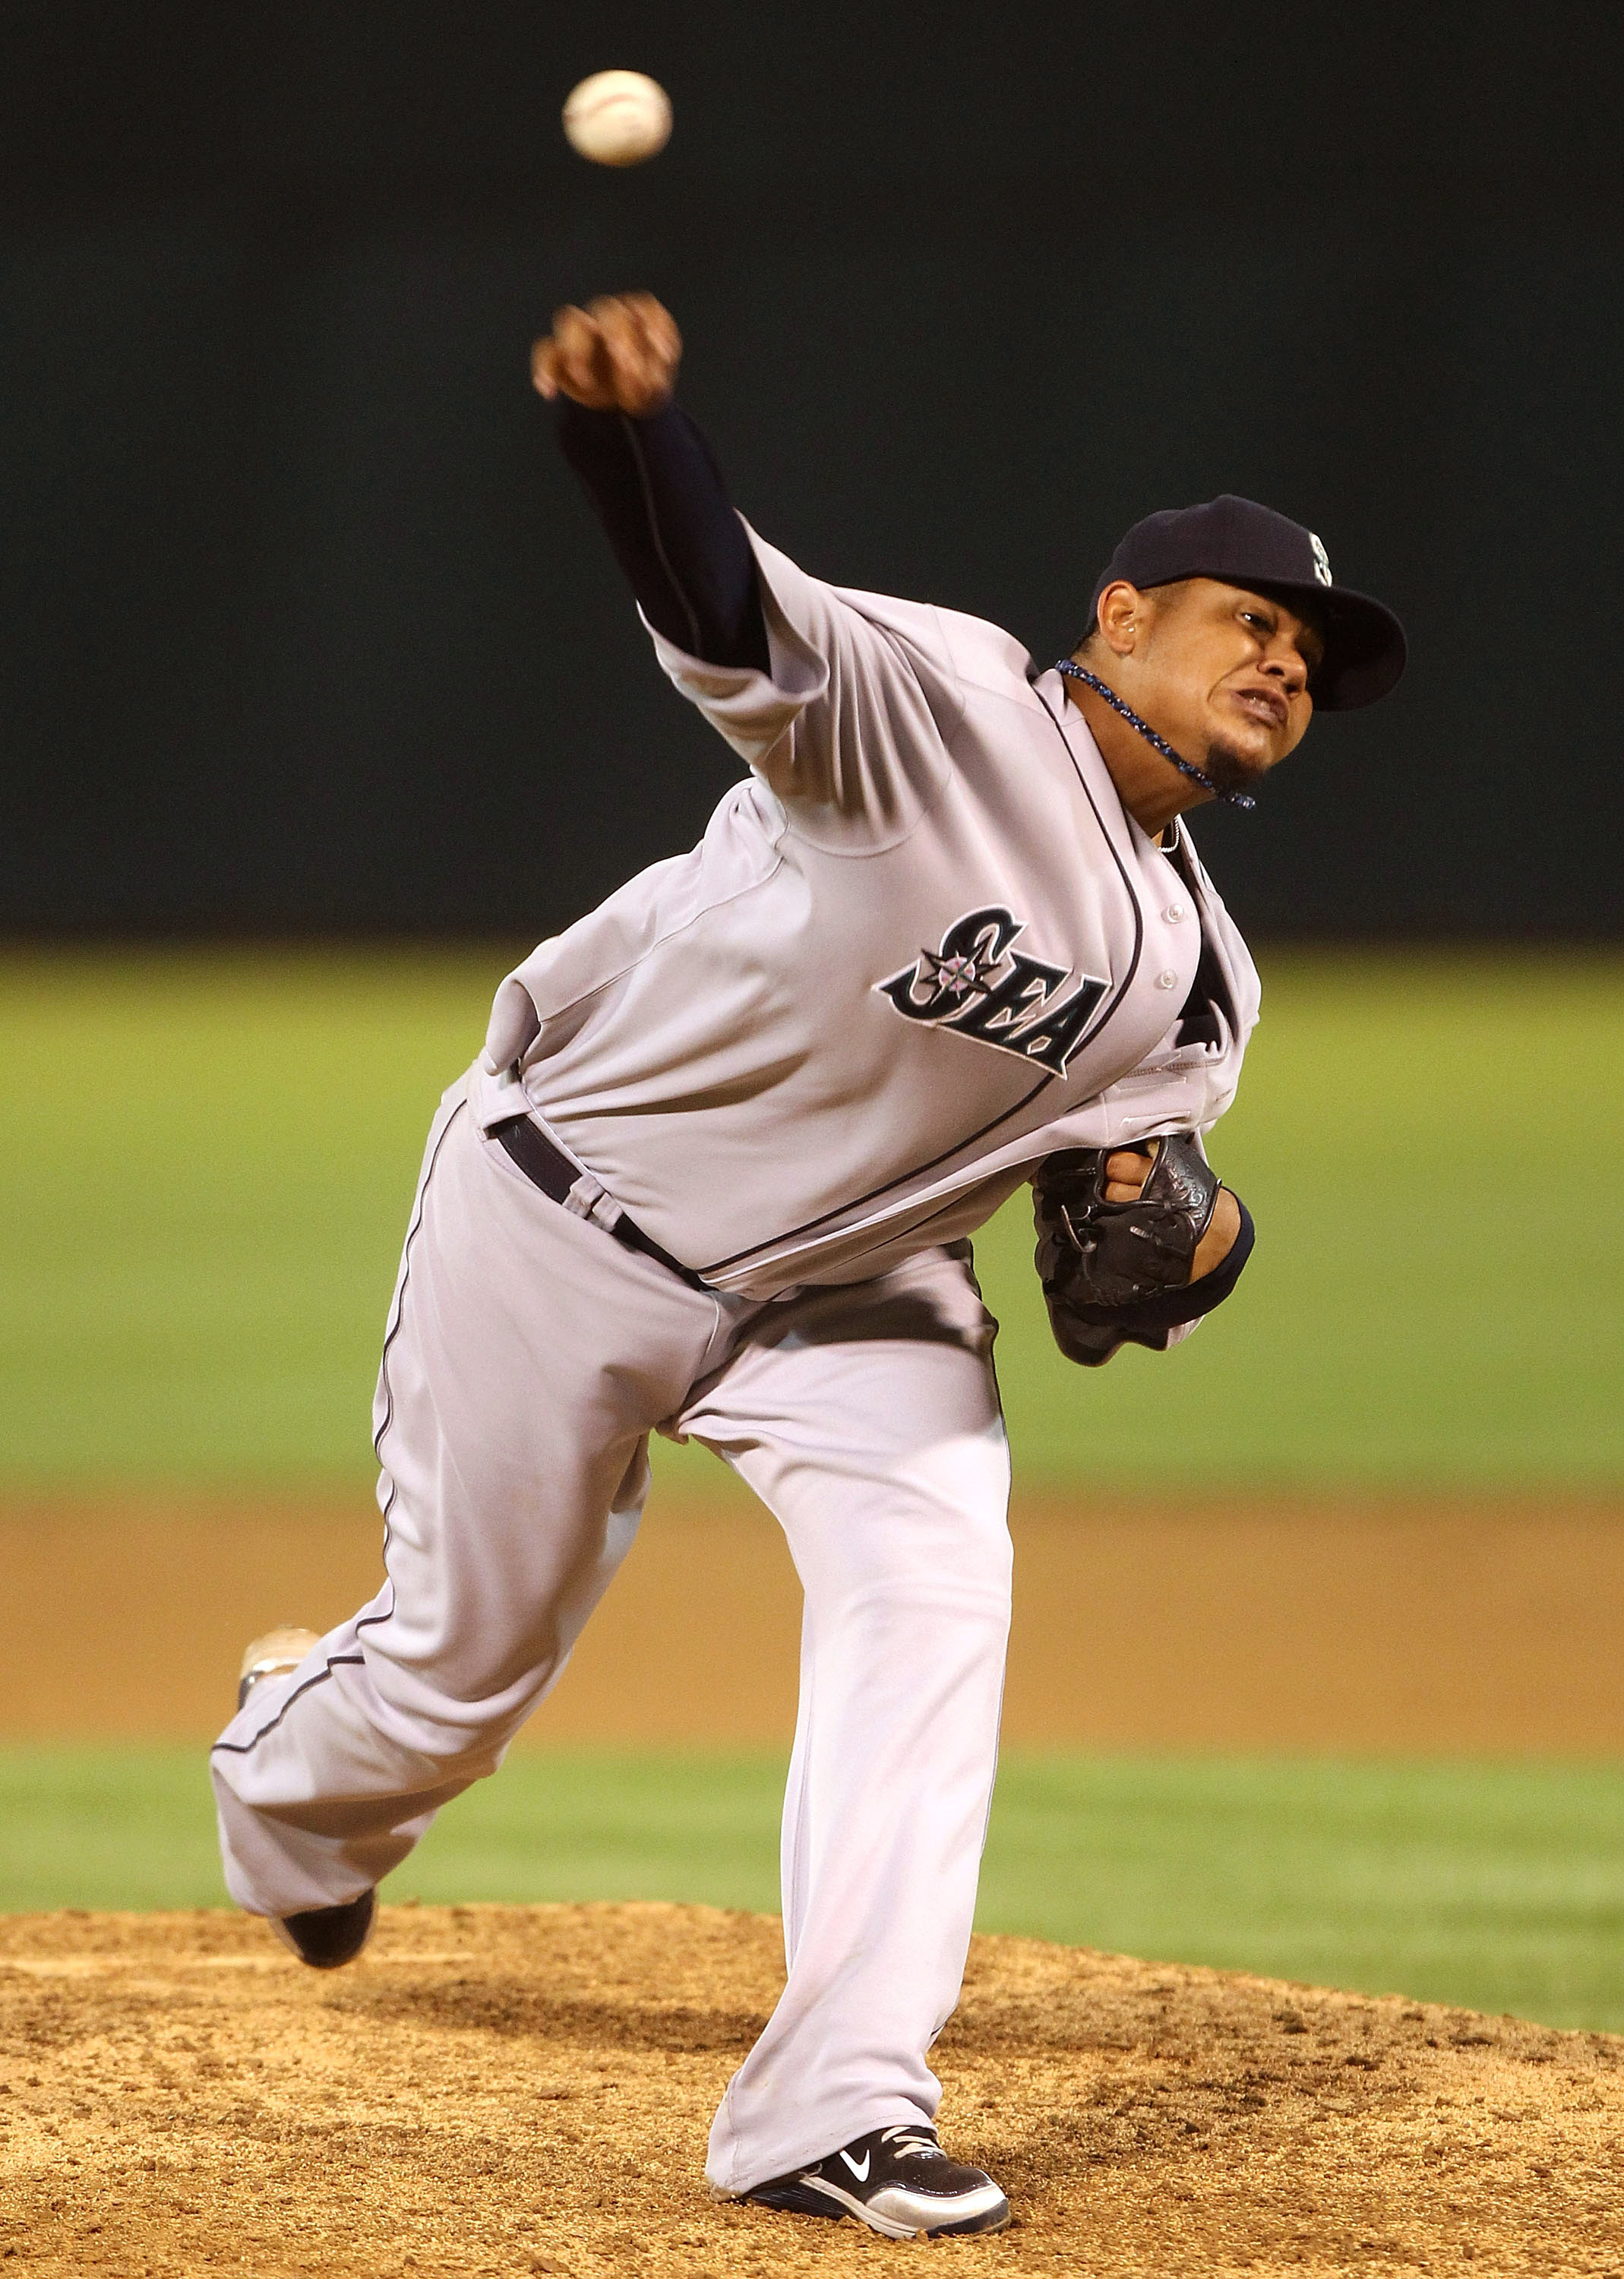 OAKLAND, CA - APRIL 01:  Felix Hernandez #34 of the Seattle Mariners pitches against the Oakland Athletics during an opening day game of Major League Baseball at the Oakland-Alameda County Coliseum on April 1, 2011 in Oakland, California.  (Photo by Jed J